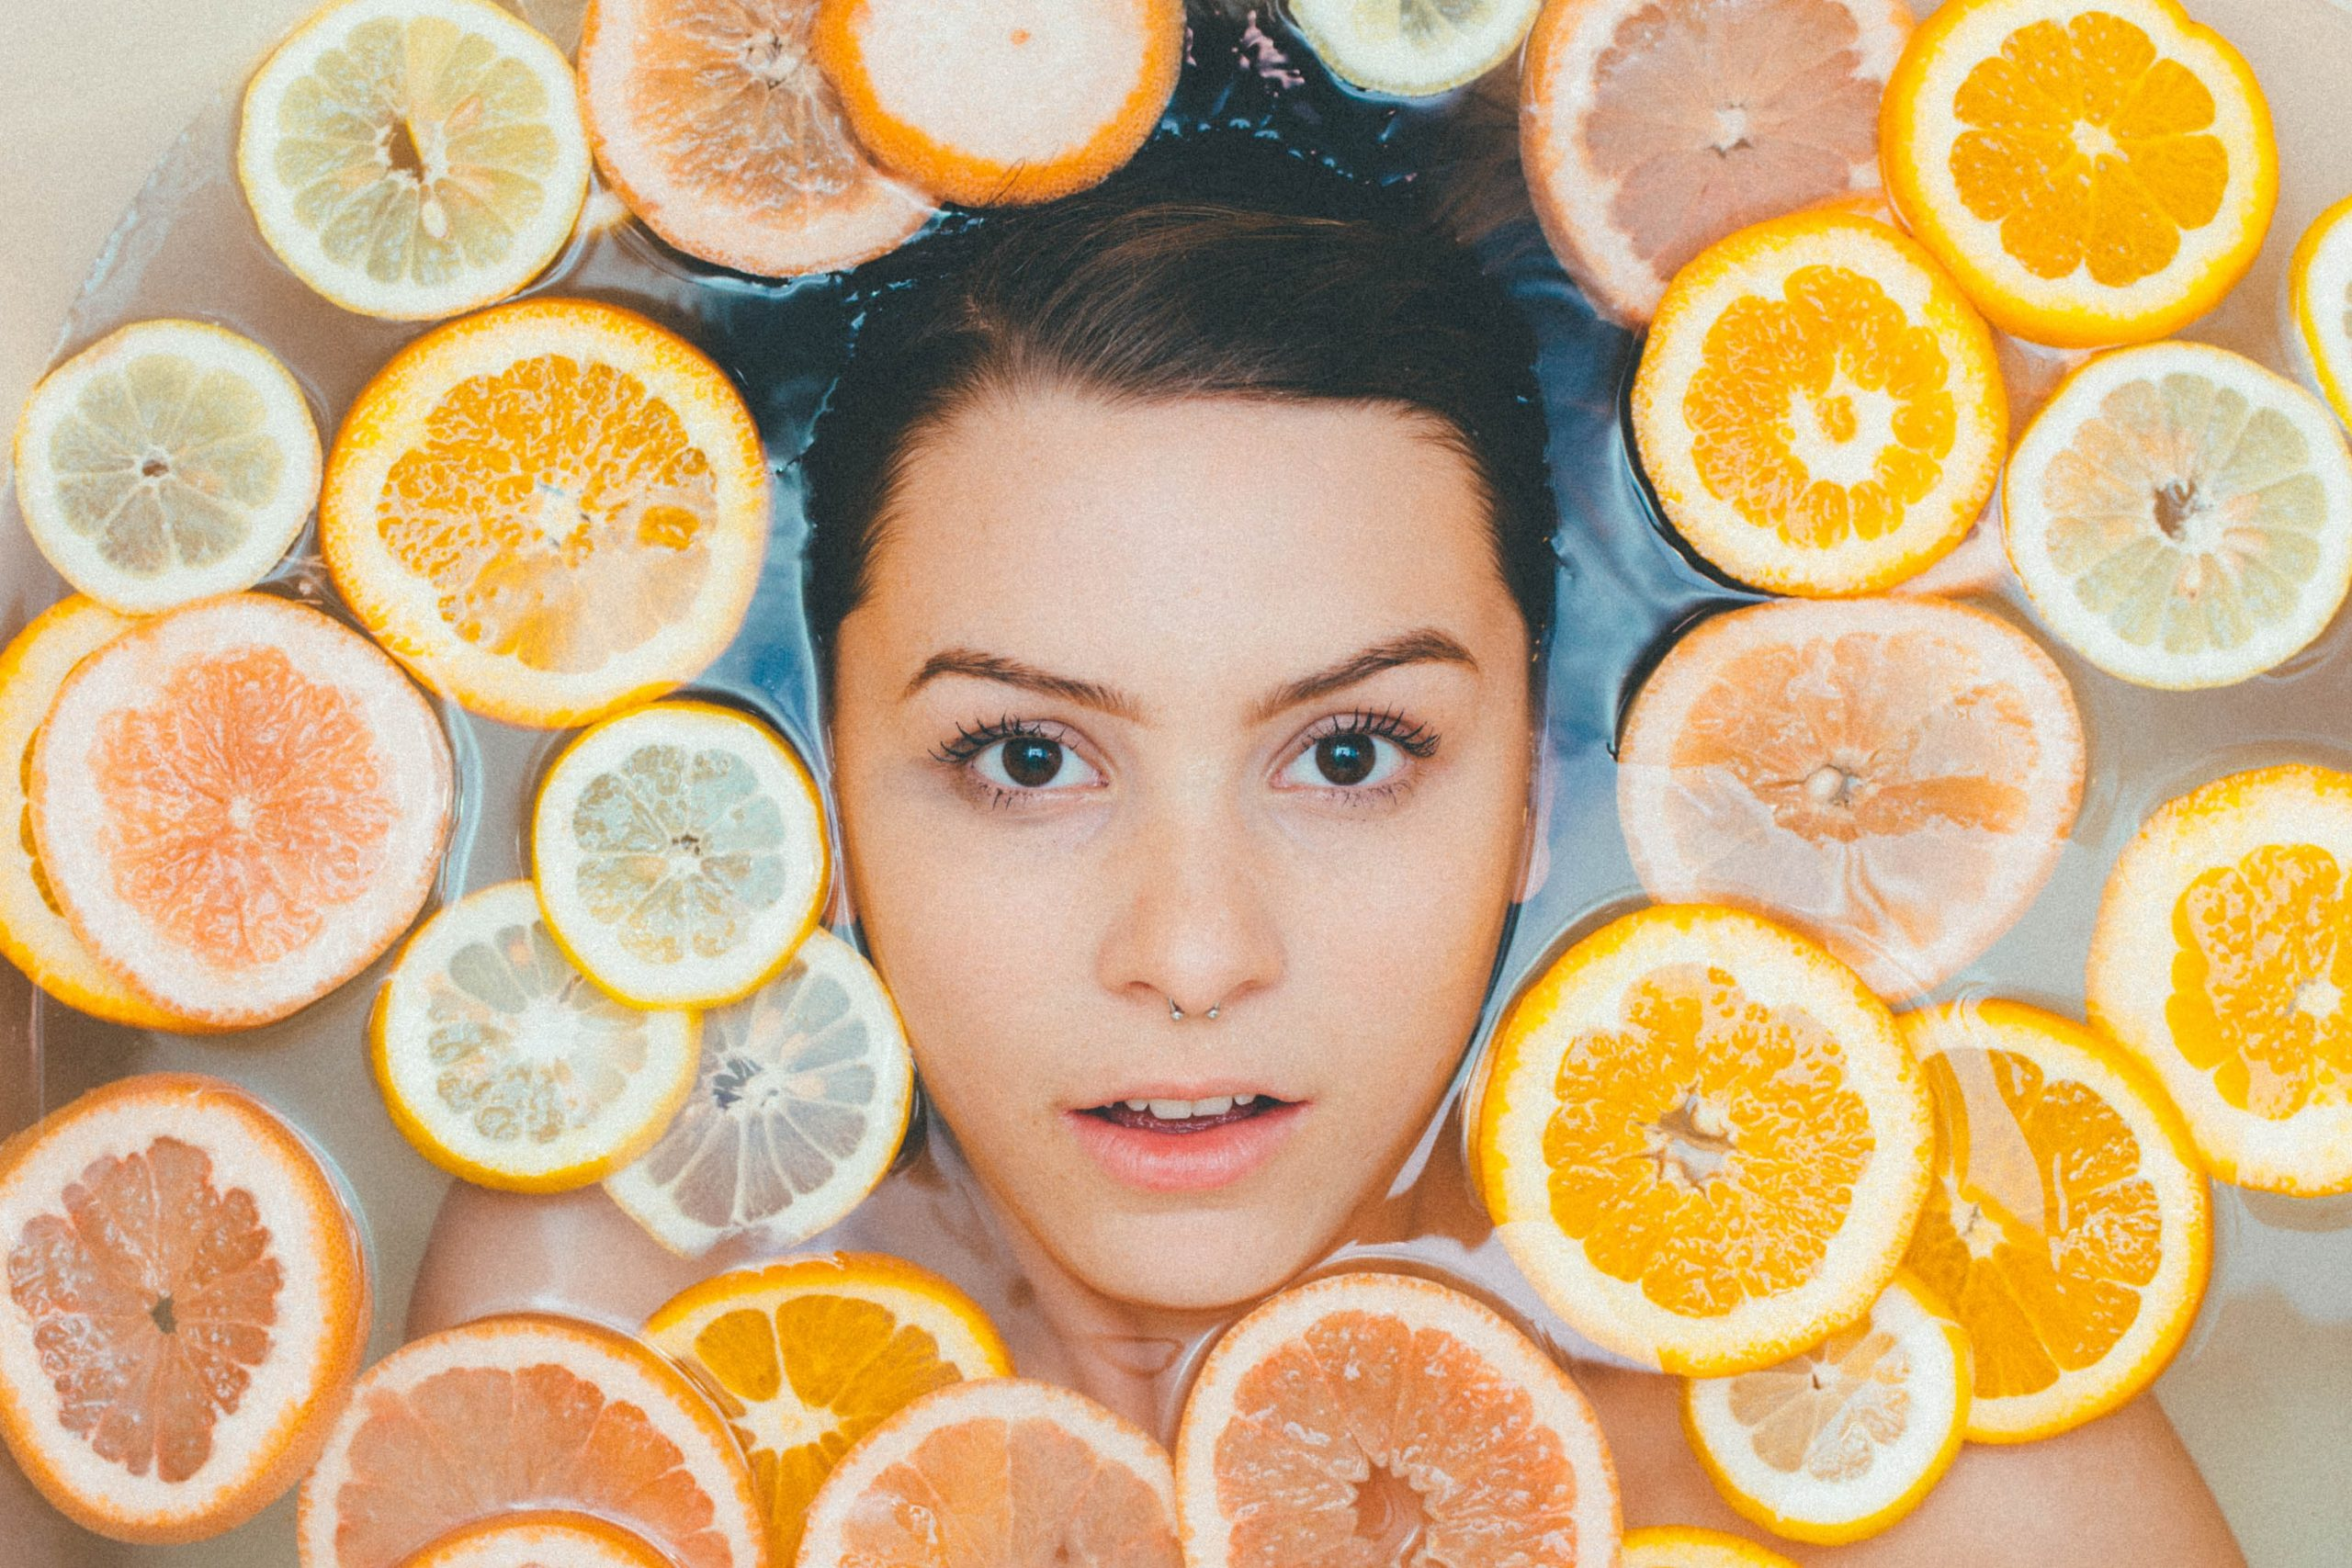 Health & Beauty: Why Your Gut Matters in Skincare